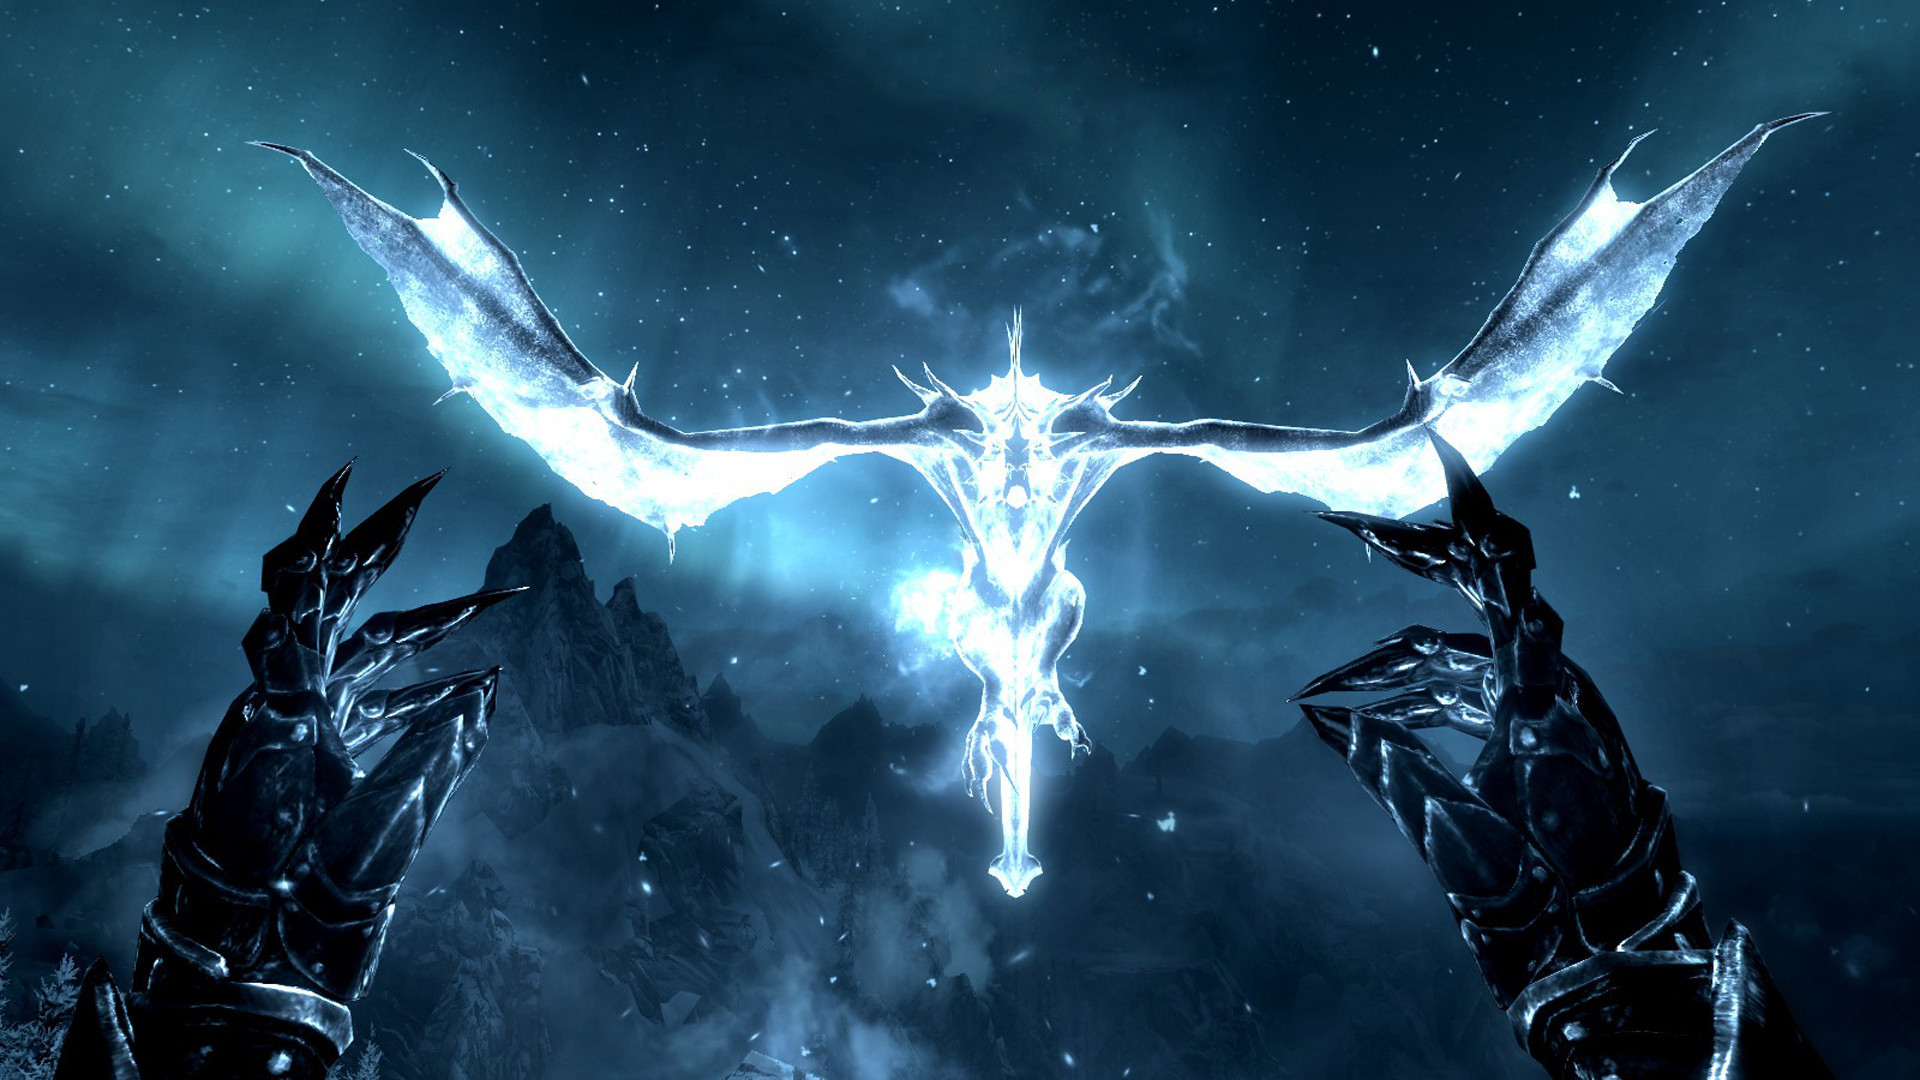 1920x1080 Skyrim Wallpaper 1600x900